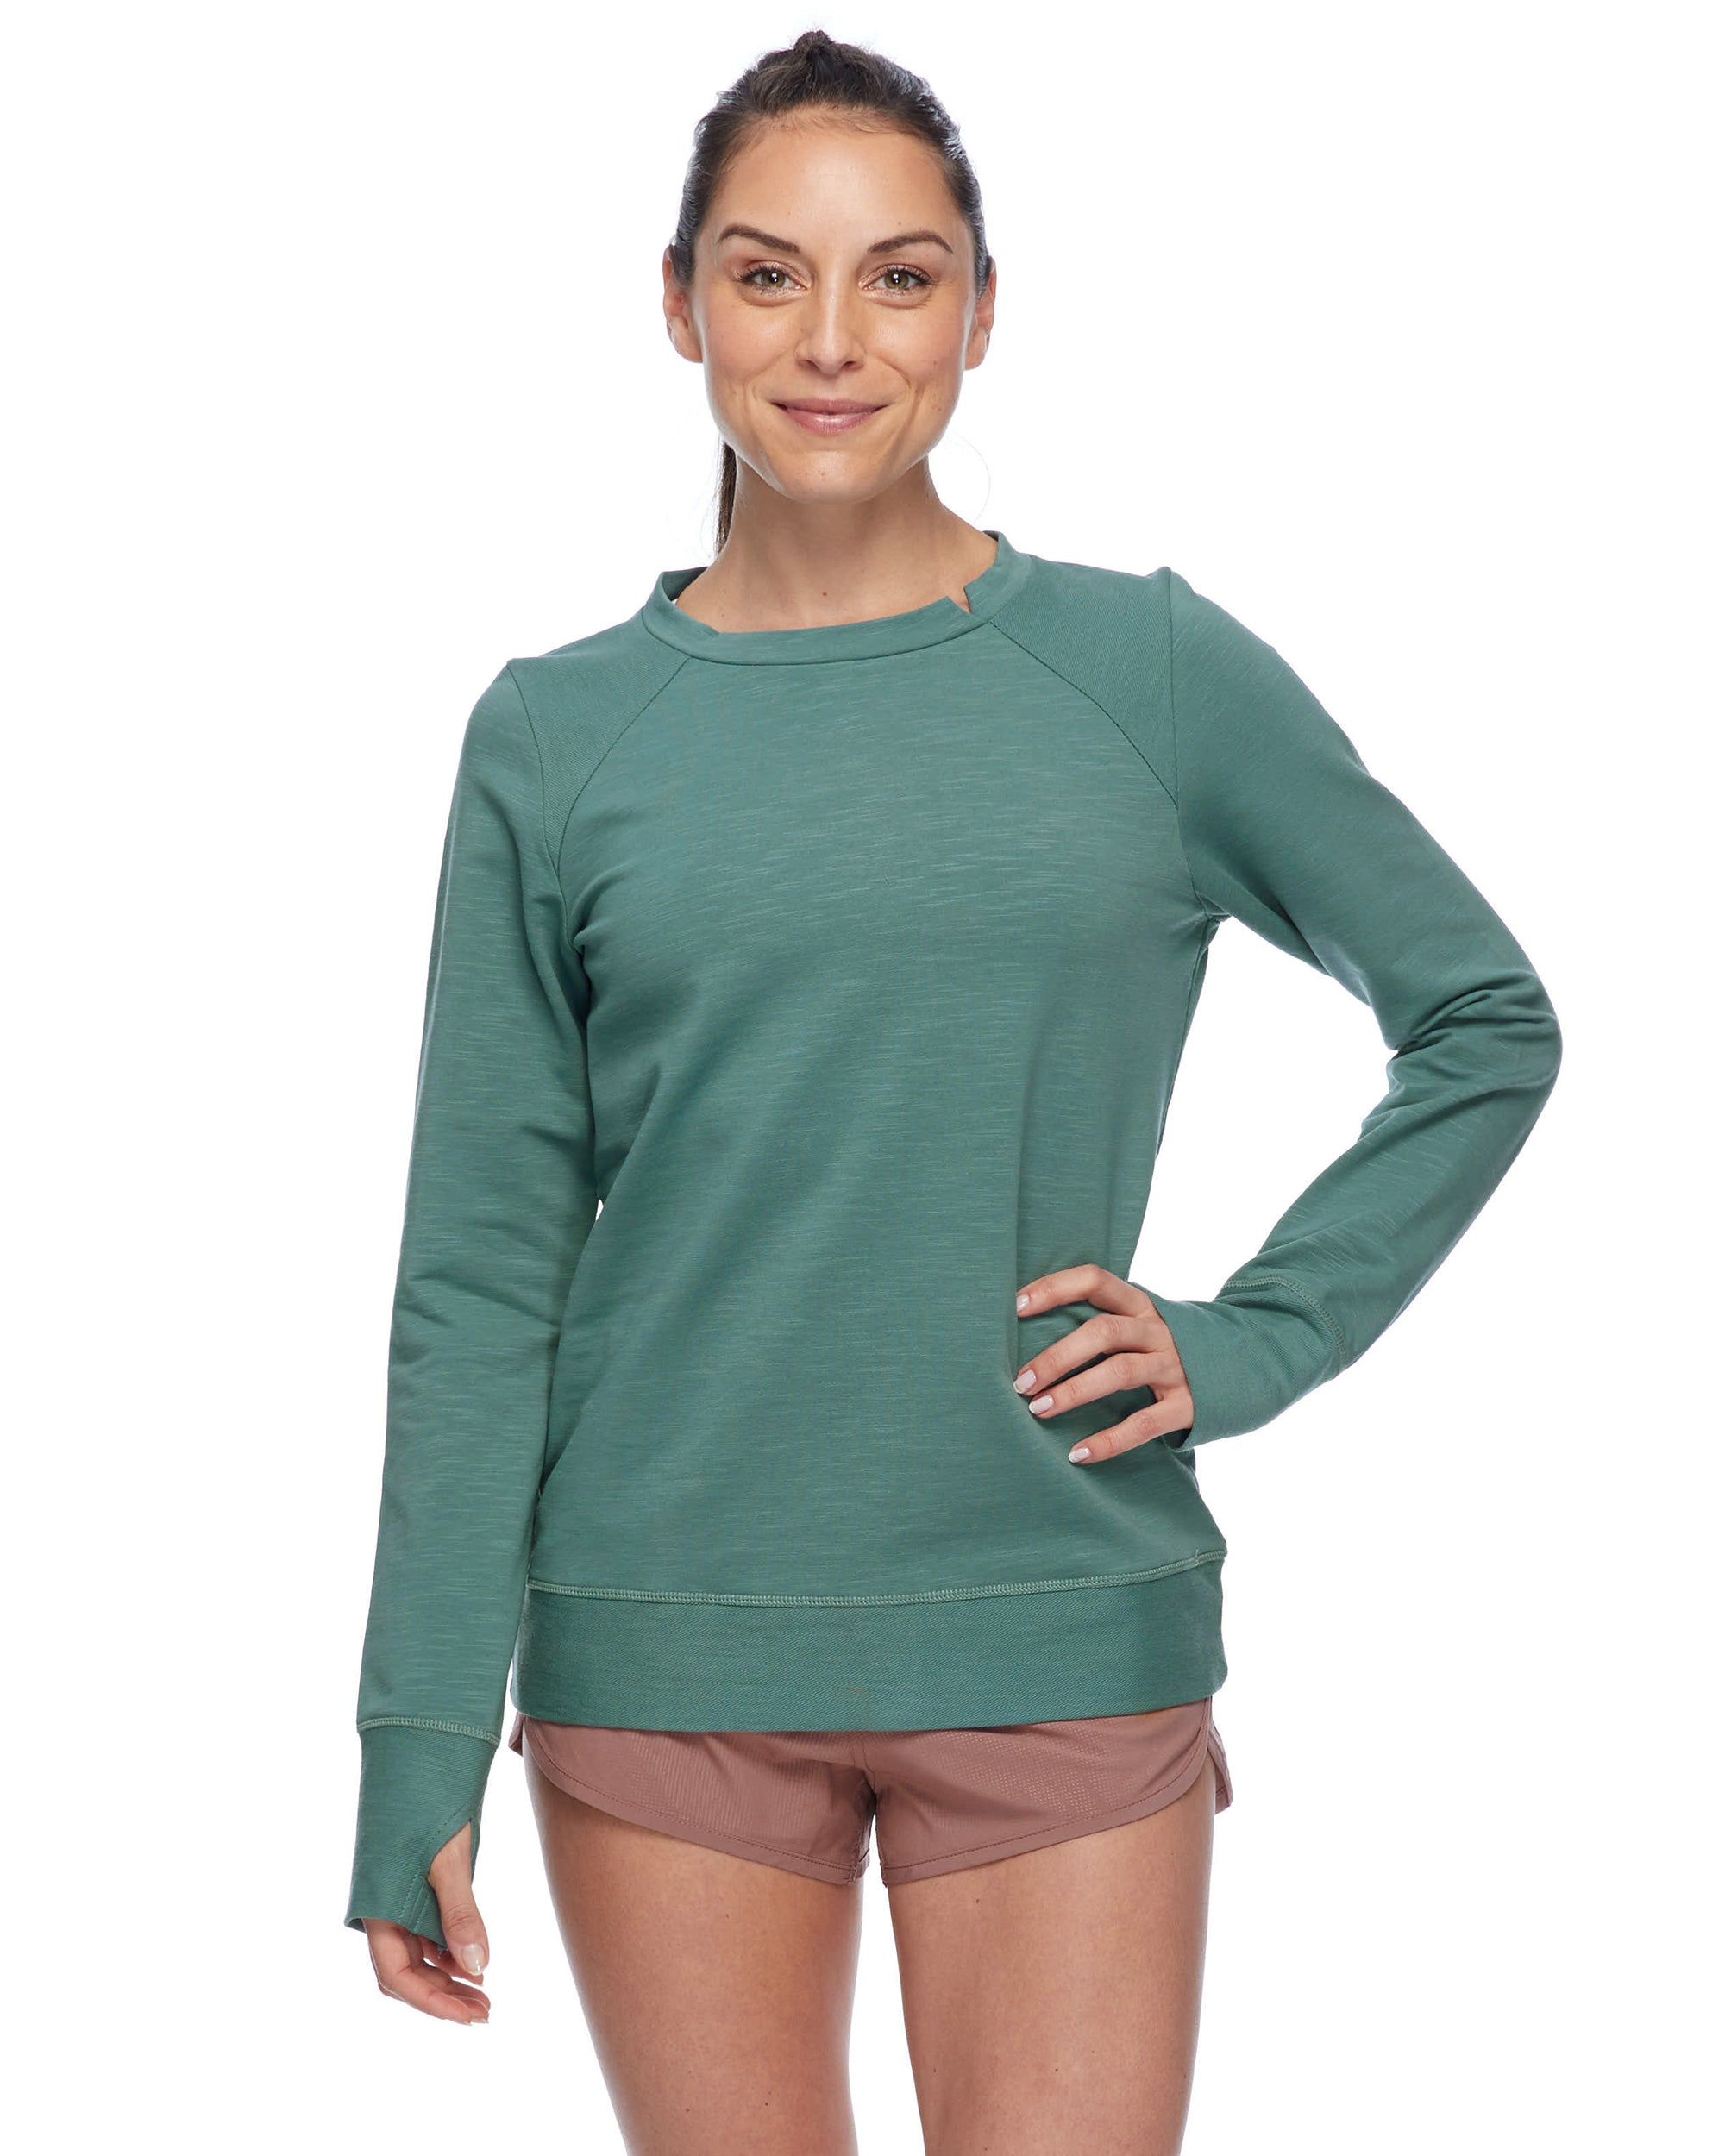 db8357db Eir Eco Women's Sweatshirt - Moss – Body Glove